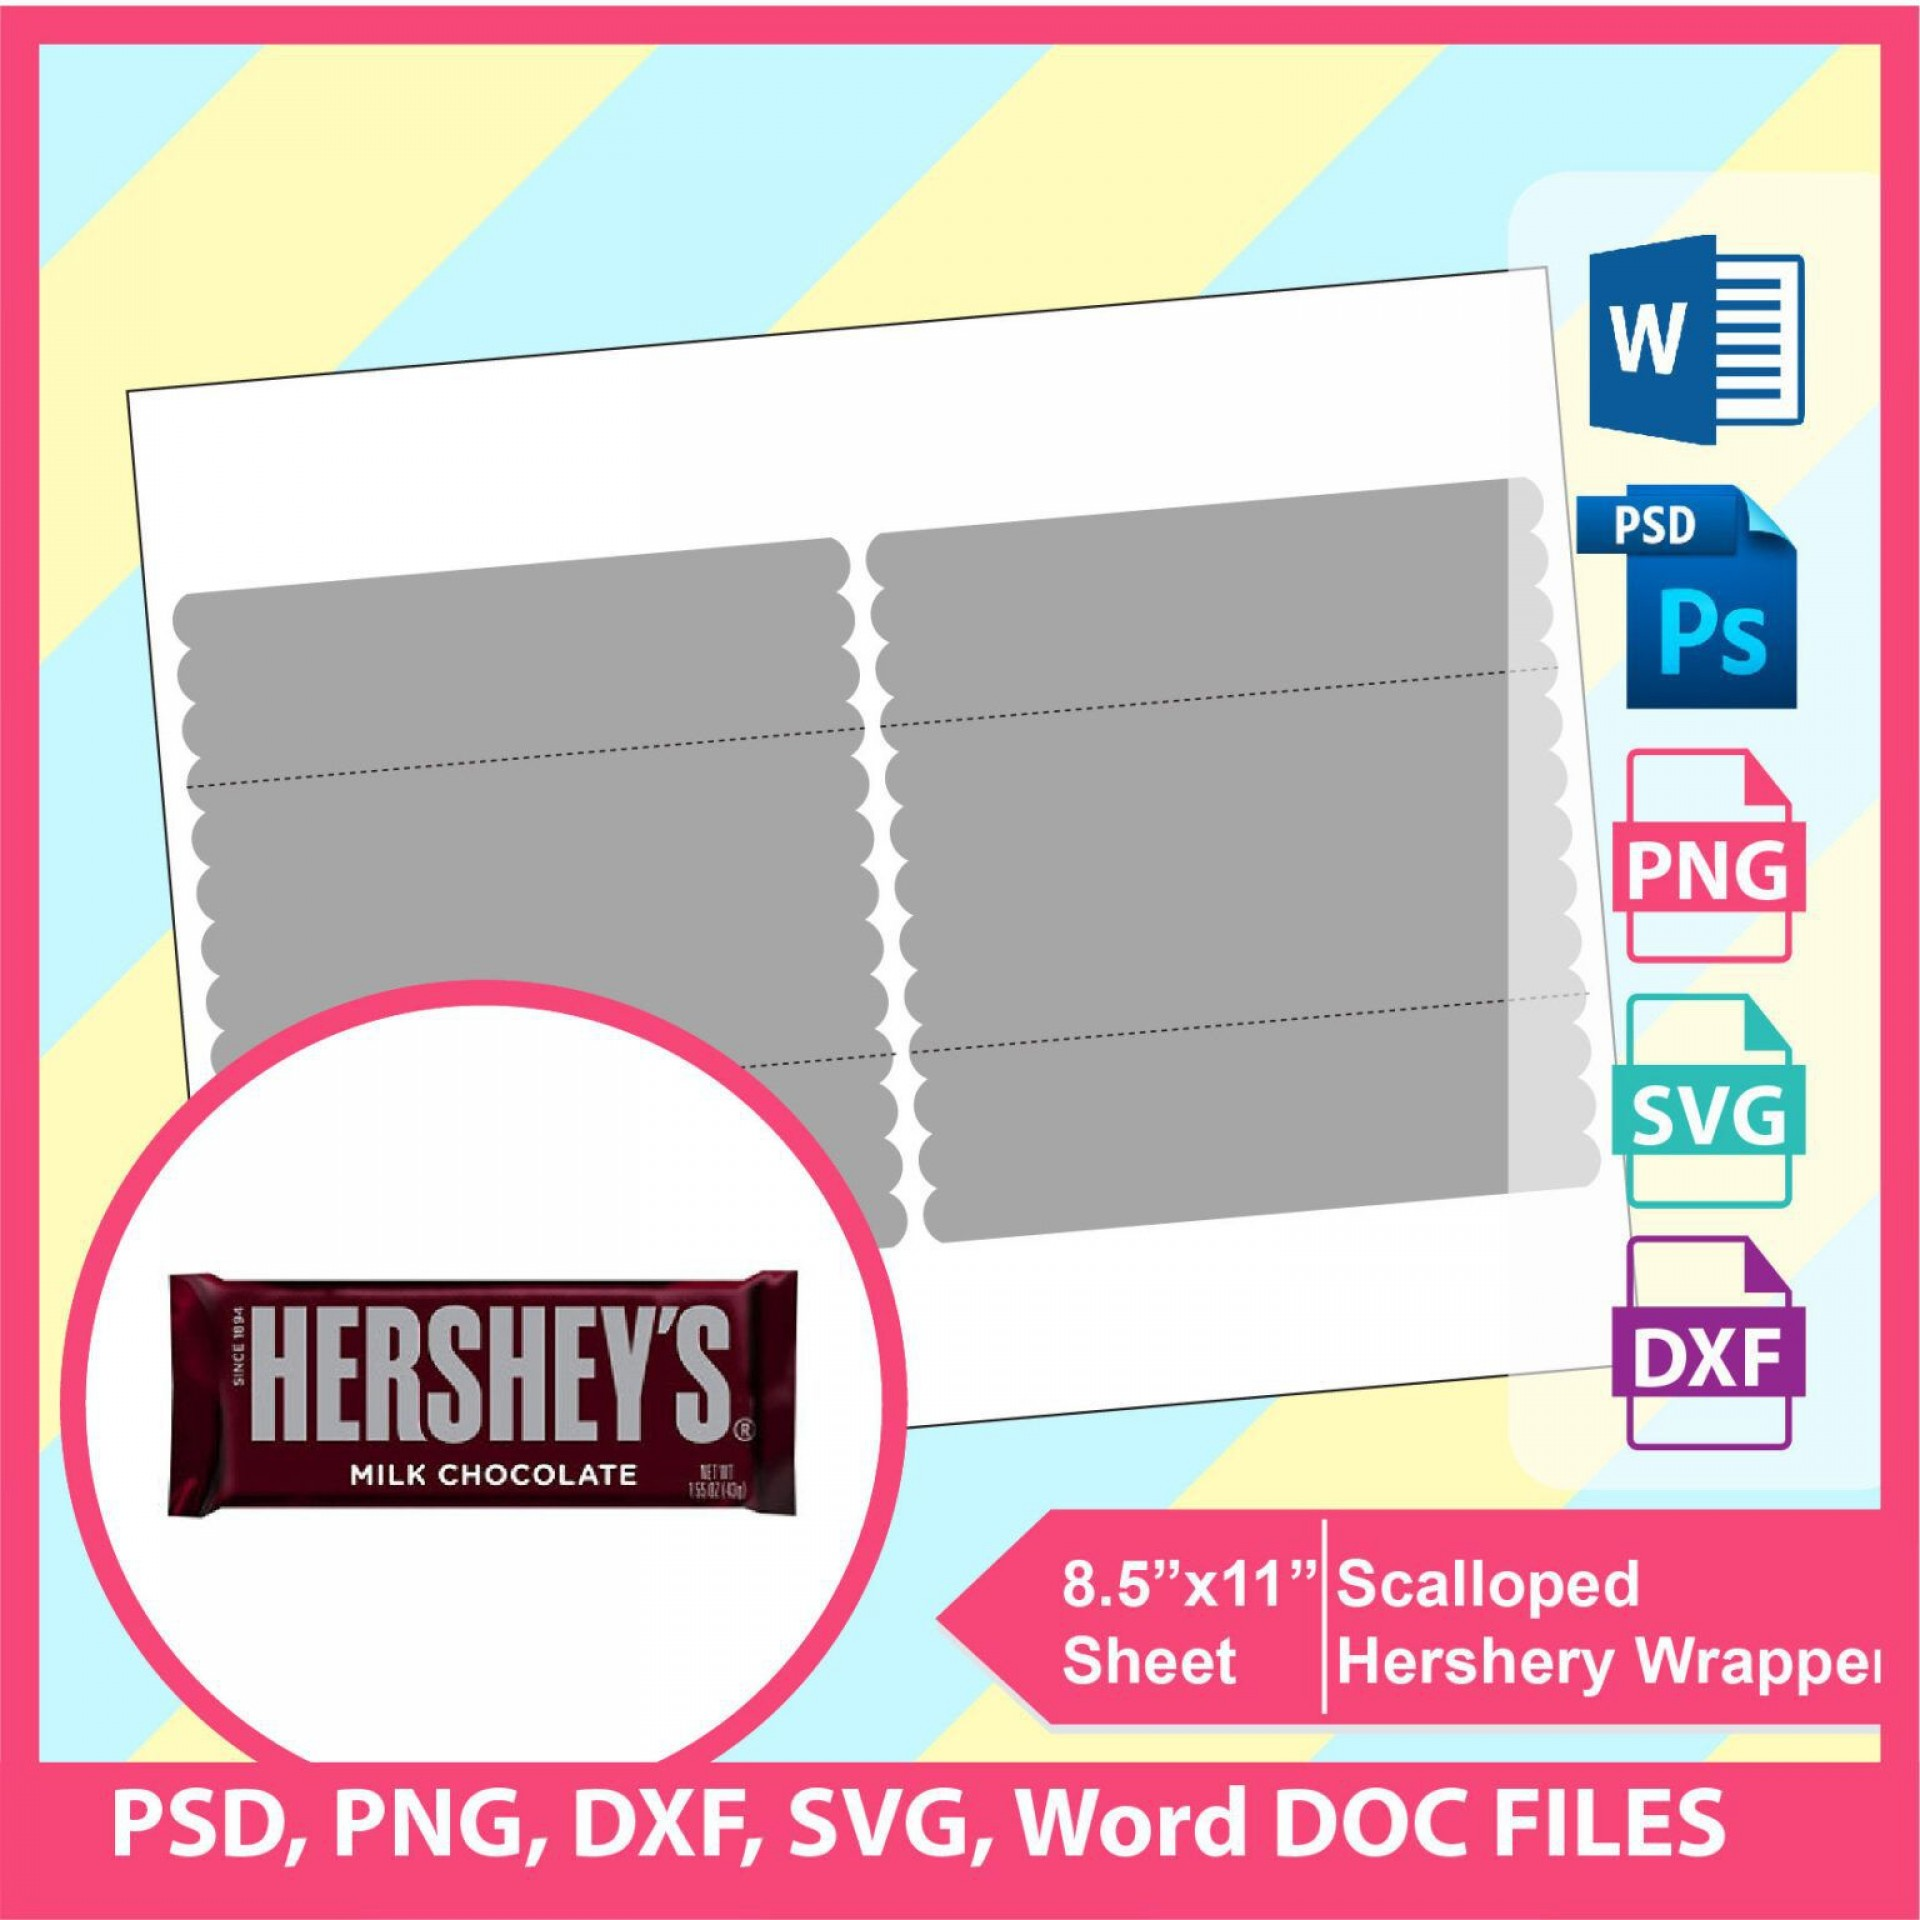 000 Amazing Candy Bar Wrapper Template Photoshop Concept  Hershey Free1920